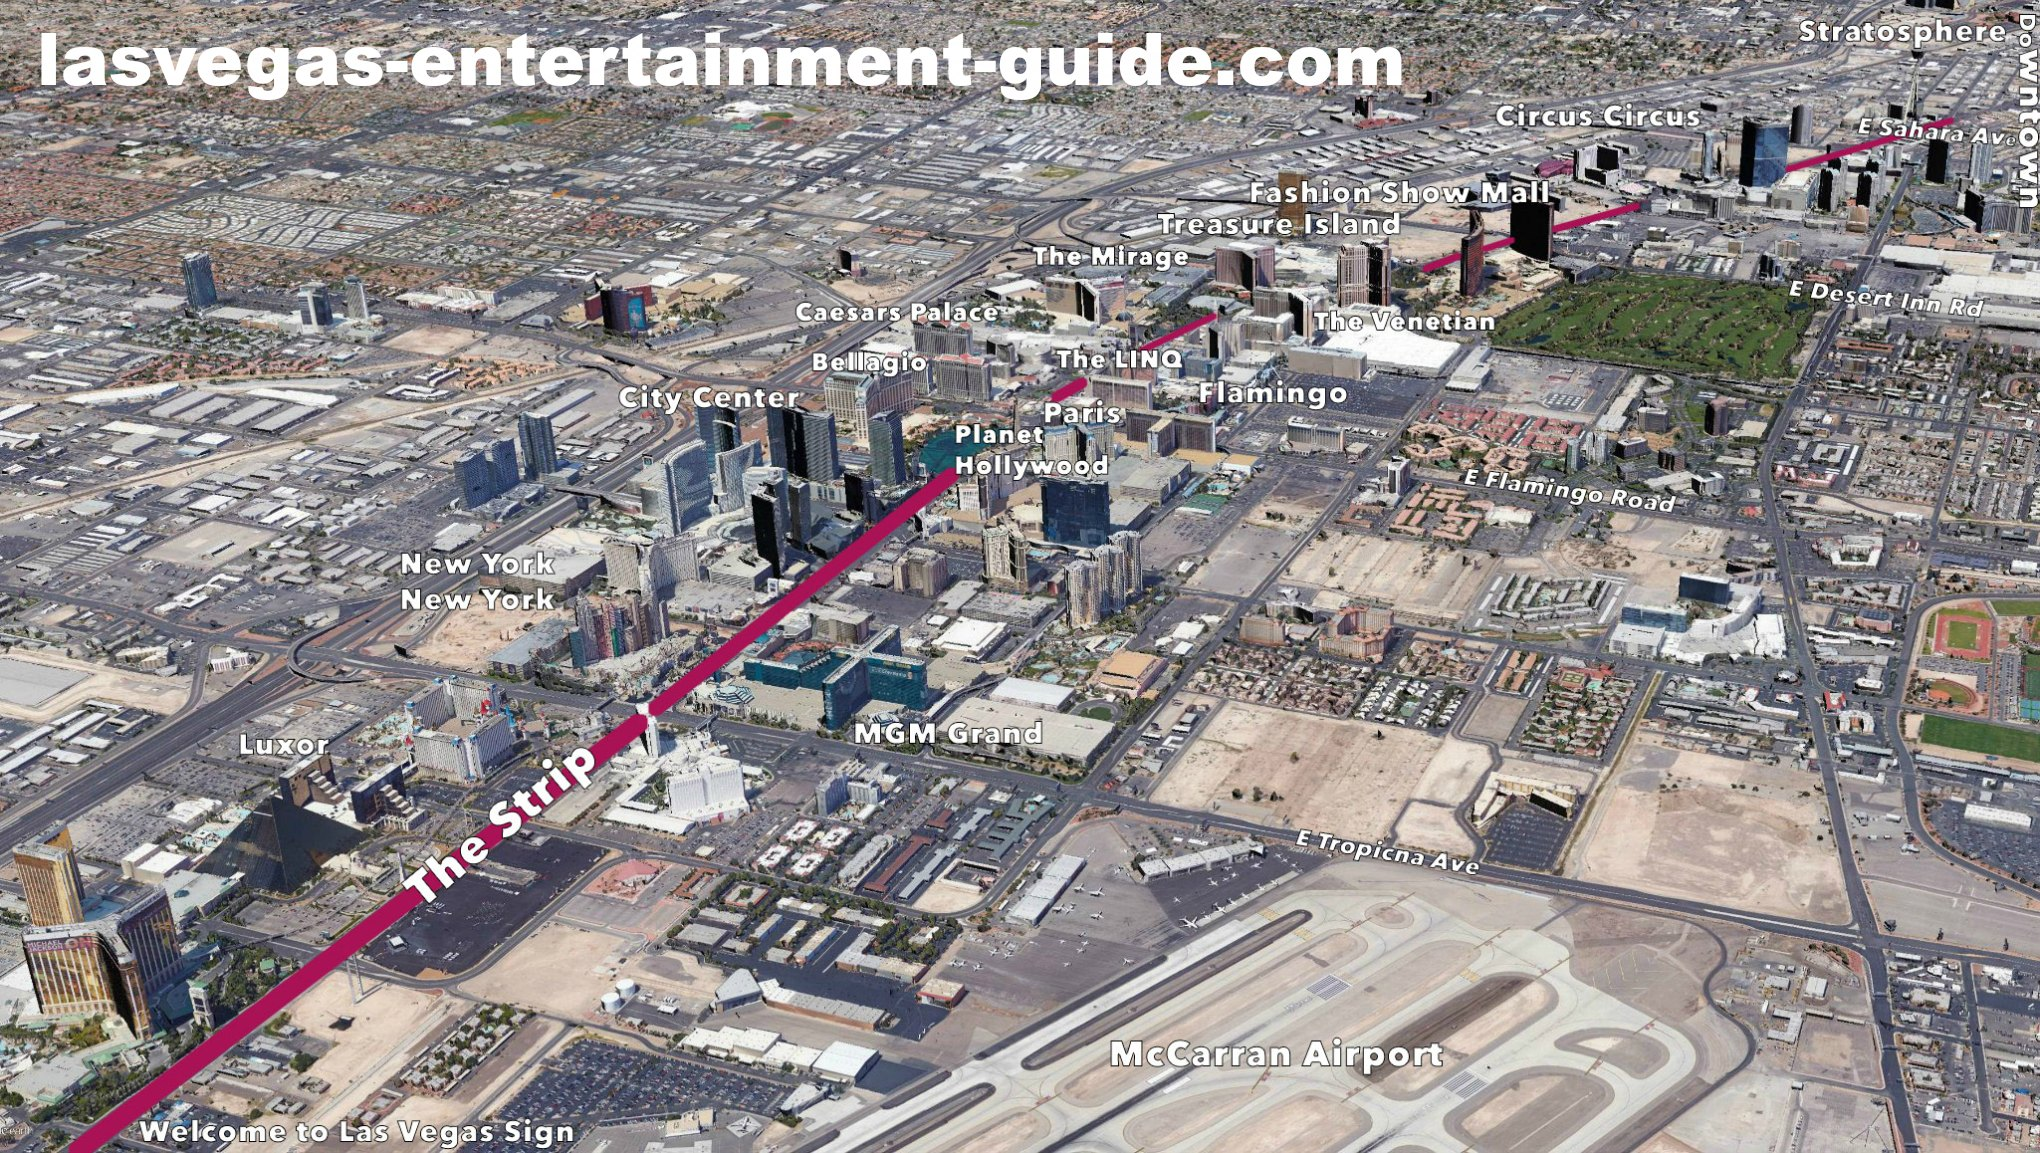 Las Vegas Map 2015  My blog